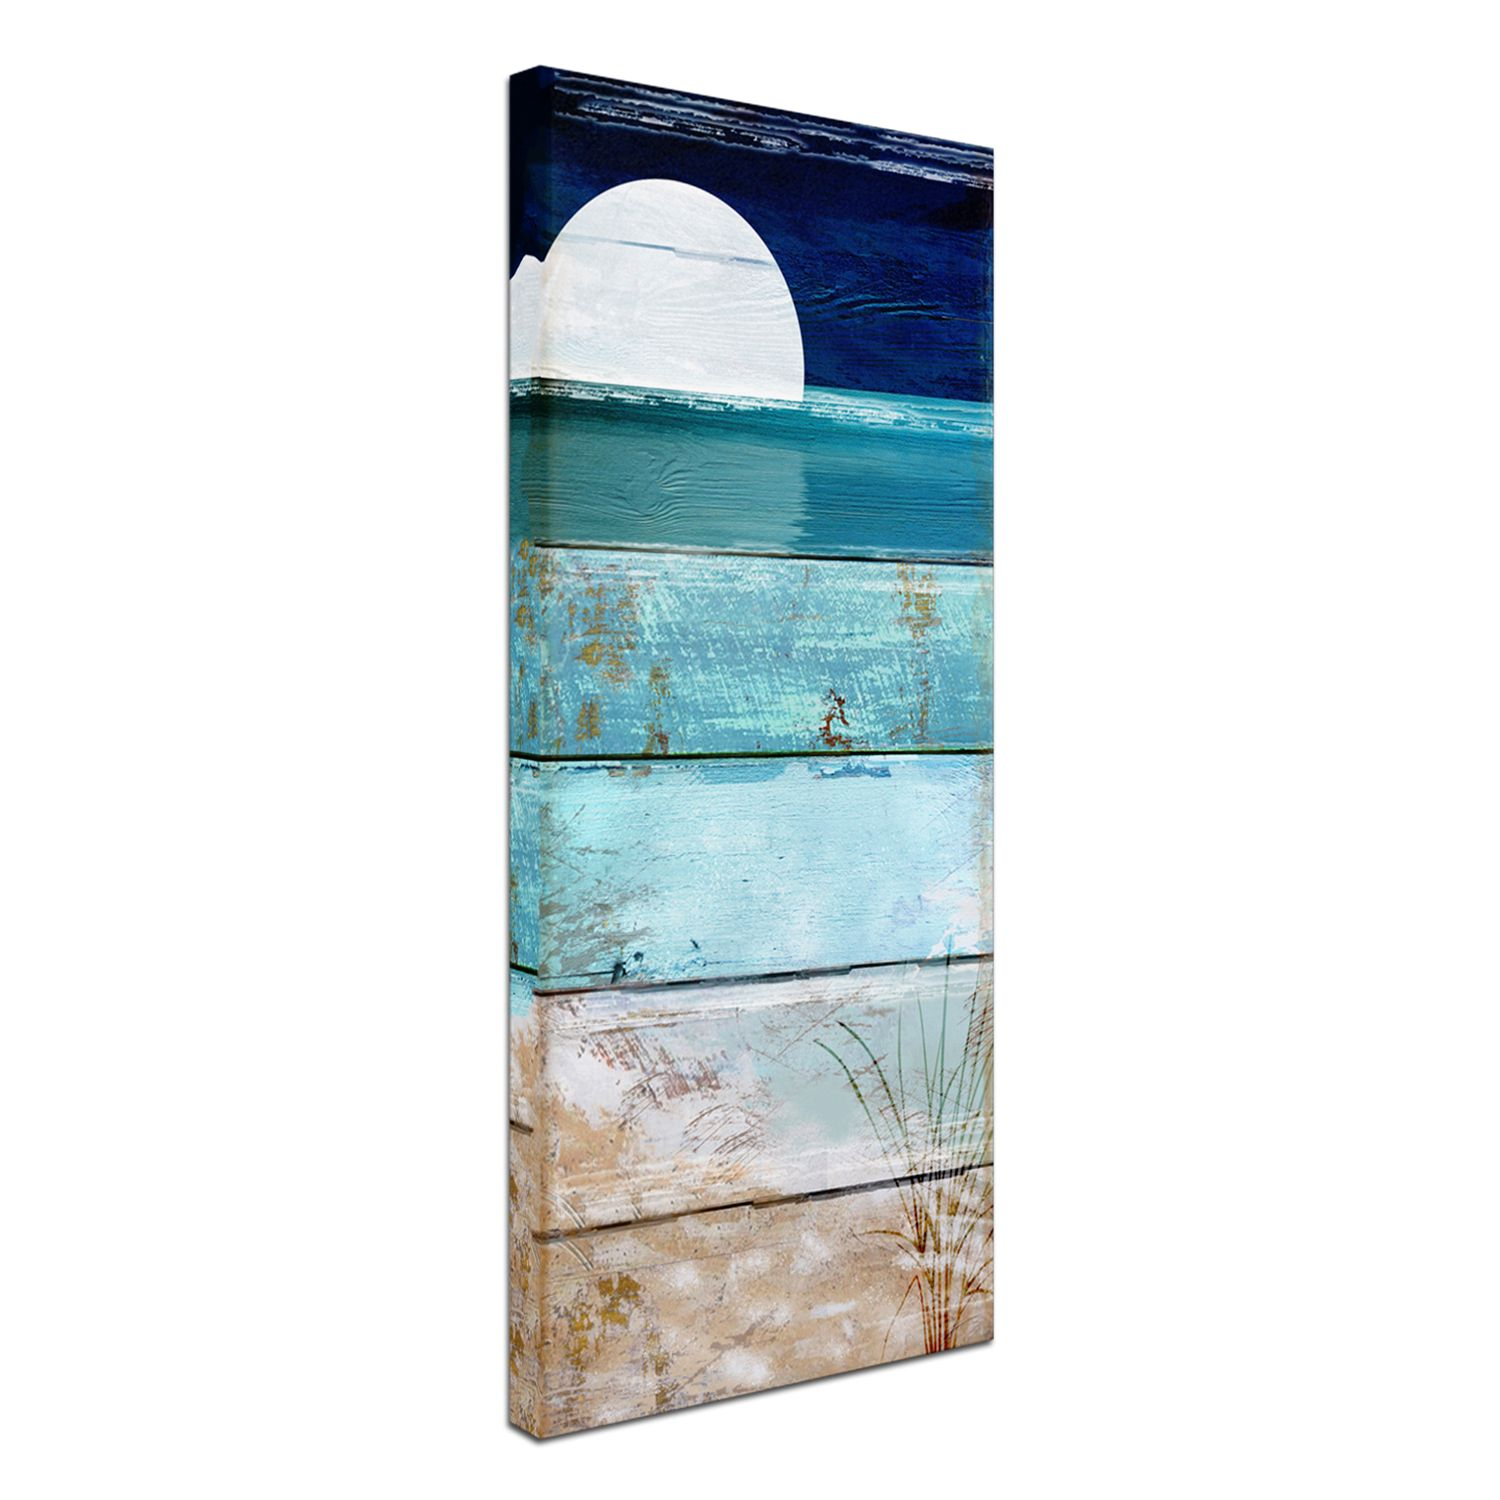 8b4ea561712c Coastal & Nautical Wall Decor Ideas | Kohl's